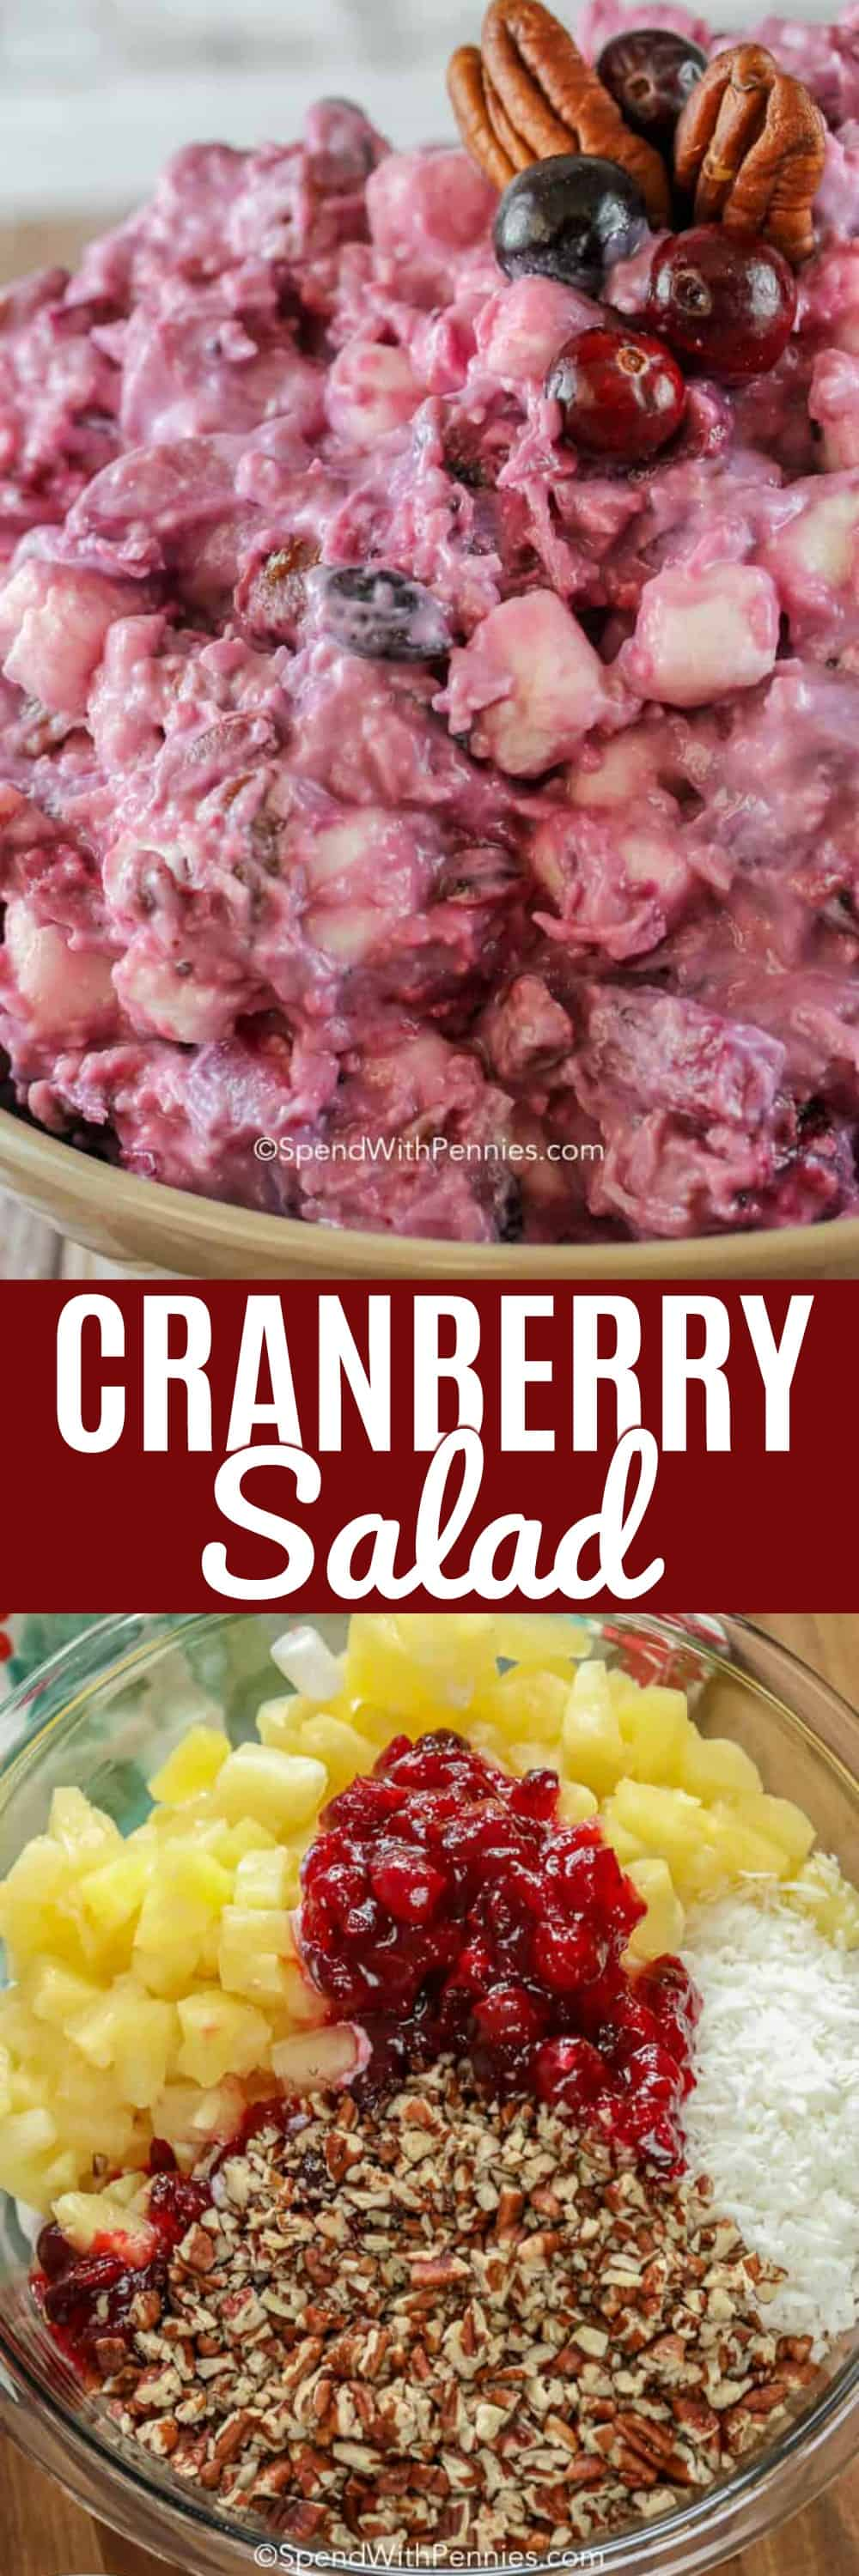 Cranberry Salad with writing and ingredients